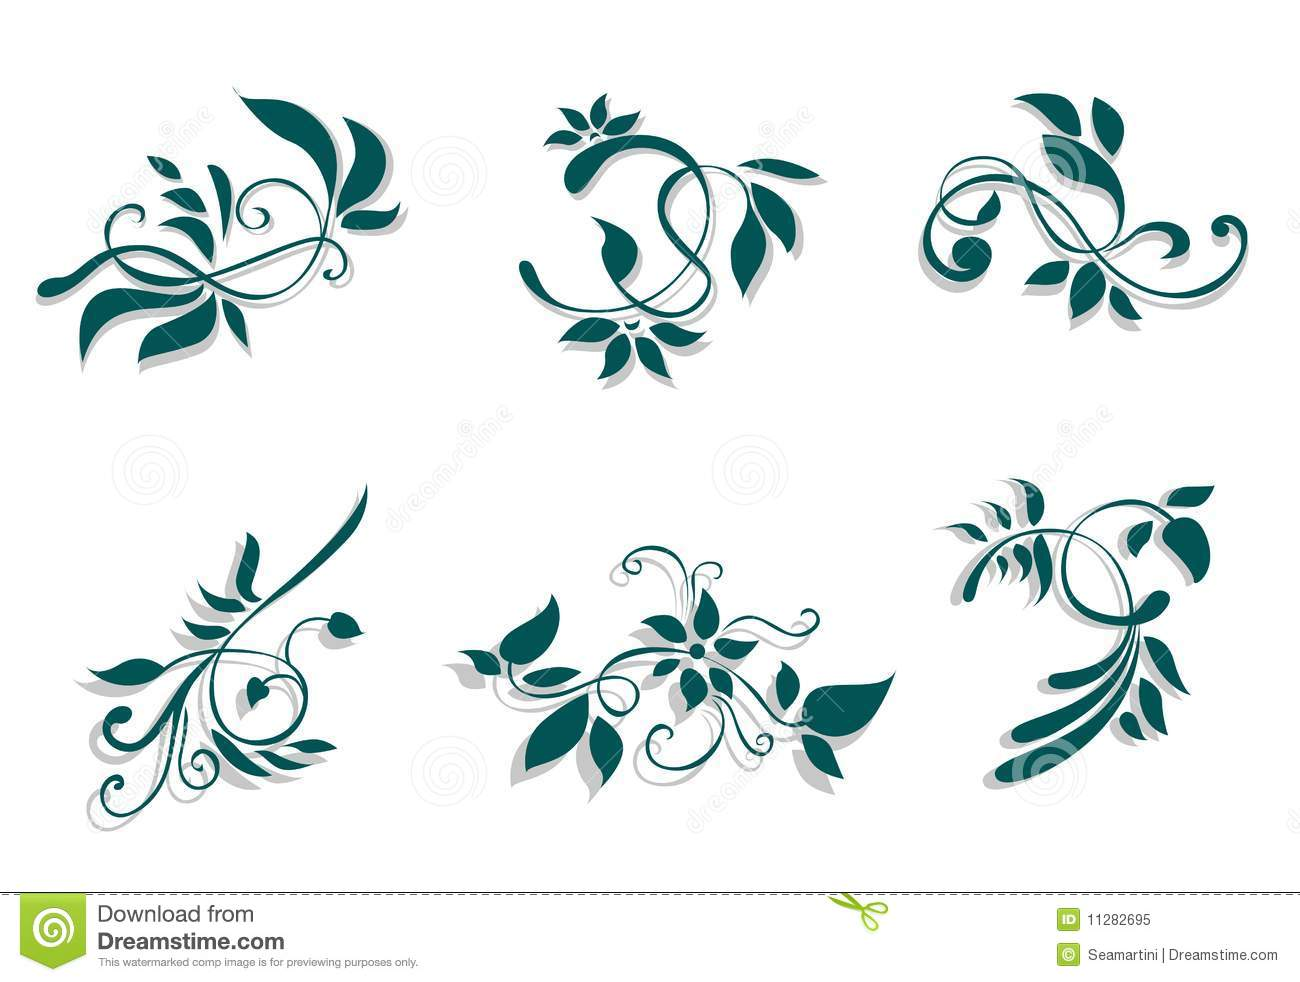 Flourish decorations royalty free stock photo image for Decoraciones para trabajos